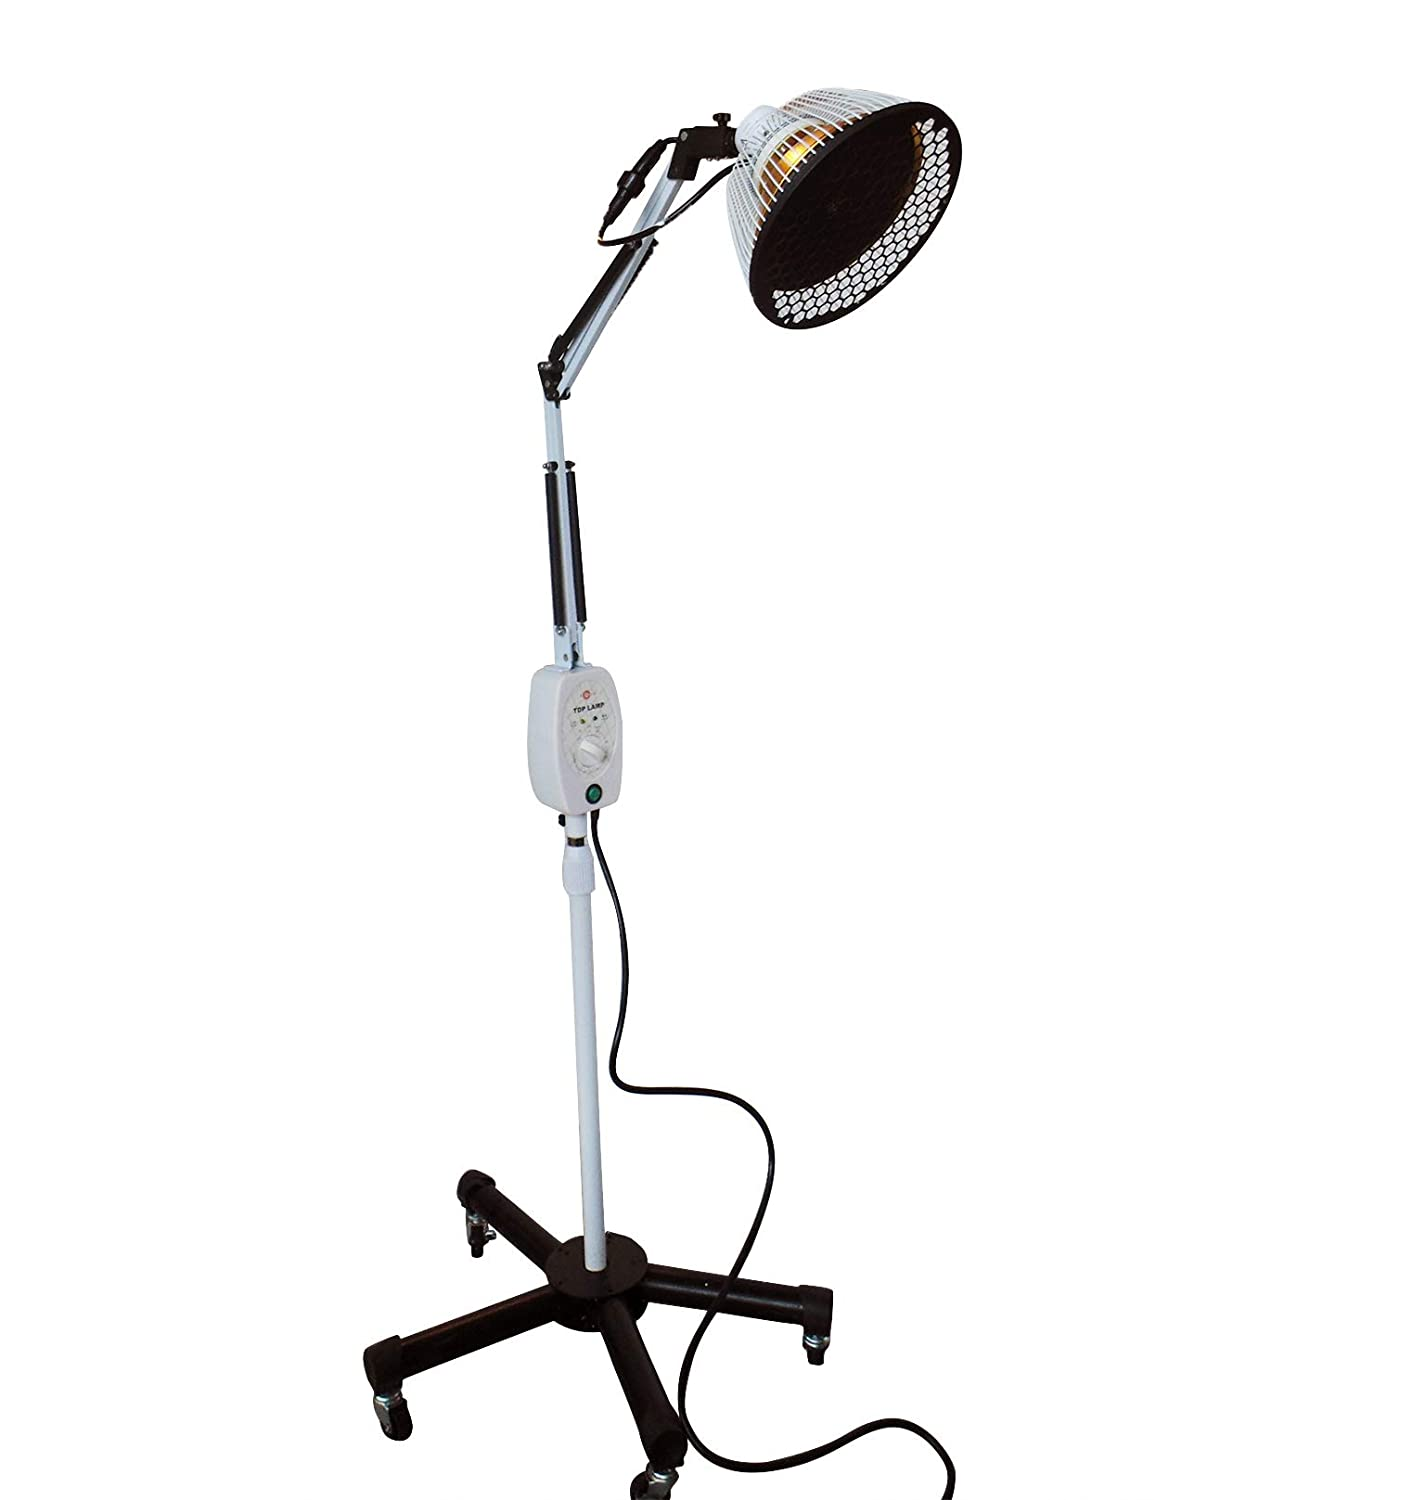 Improved TDP Lamp CQ222 – Genuine 6.5 inch Mineral Plate by VITA Activate 3rd Generation Mineral Lamp is Best Detachable Head Protection Cap